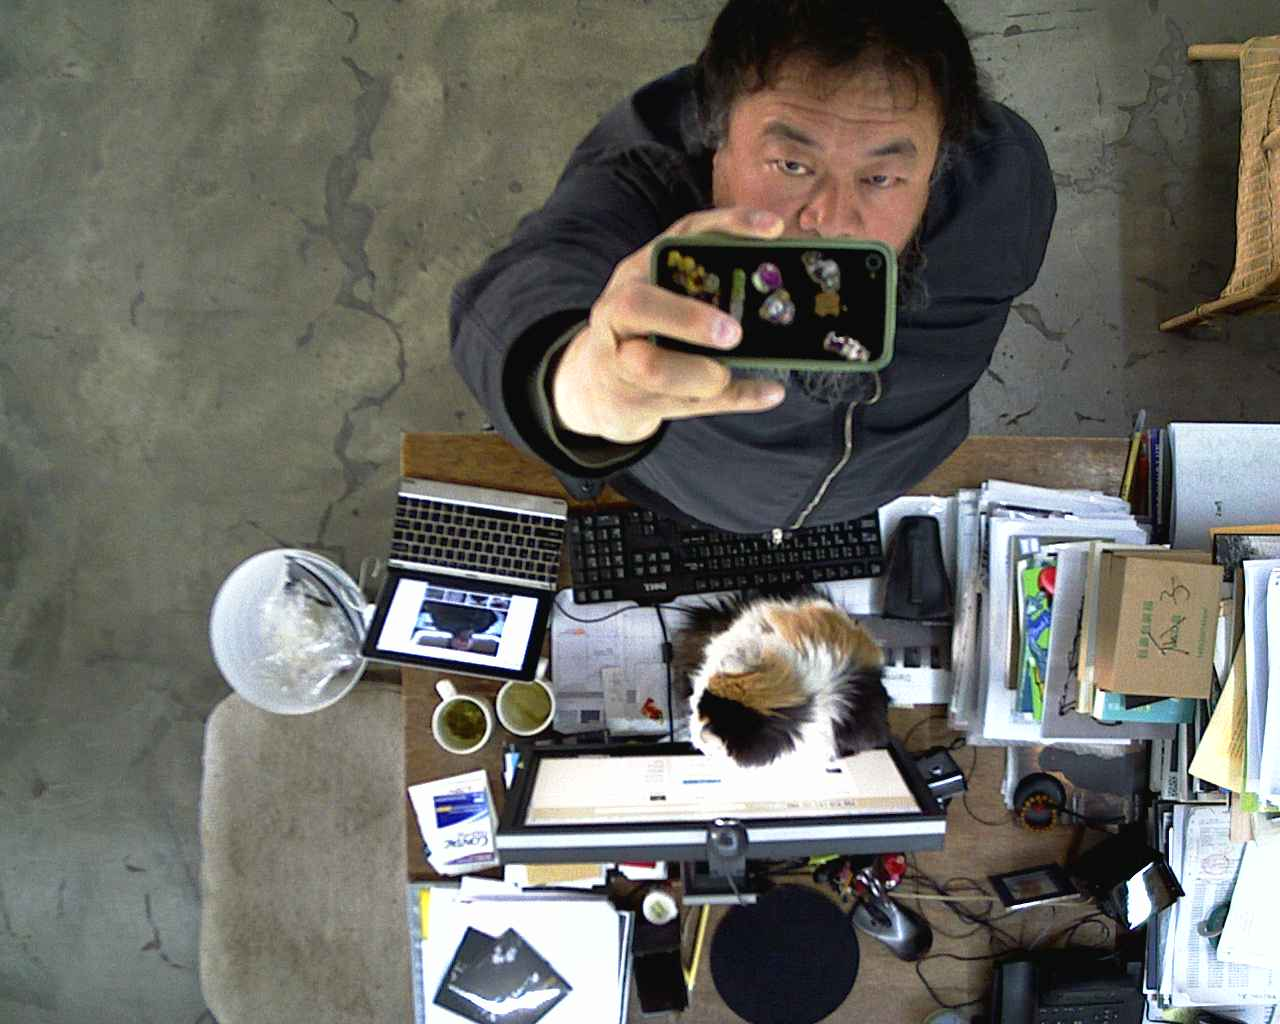 stills-from-weiweicam-which-is-now-offline-2012-2-c-ai-weiwei